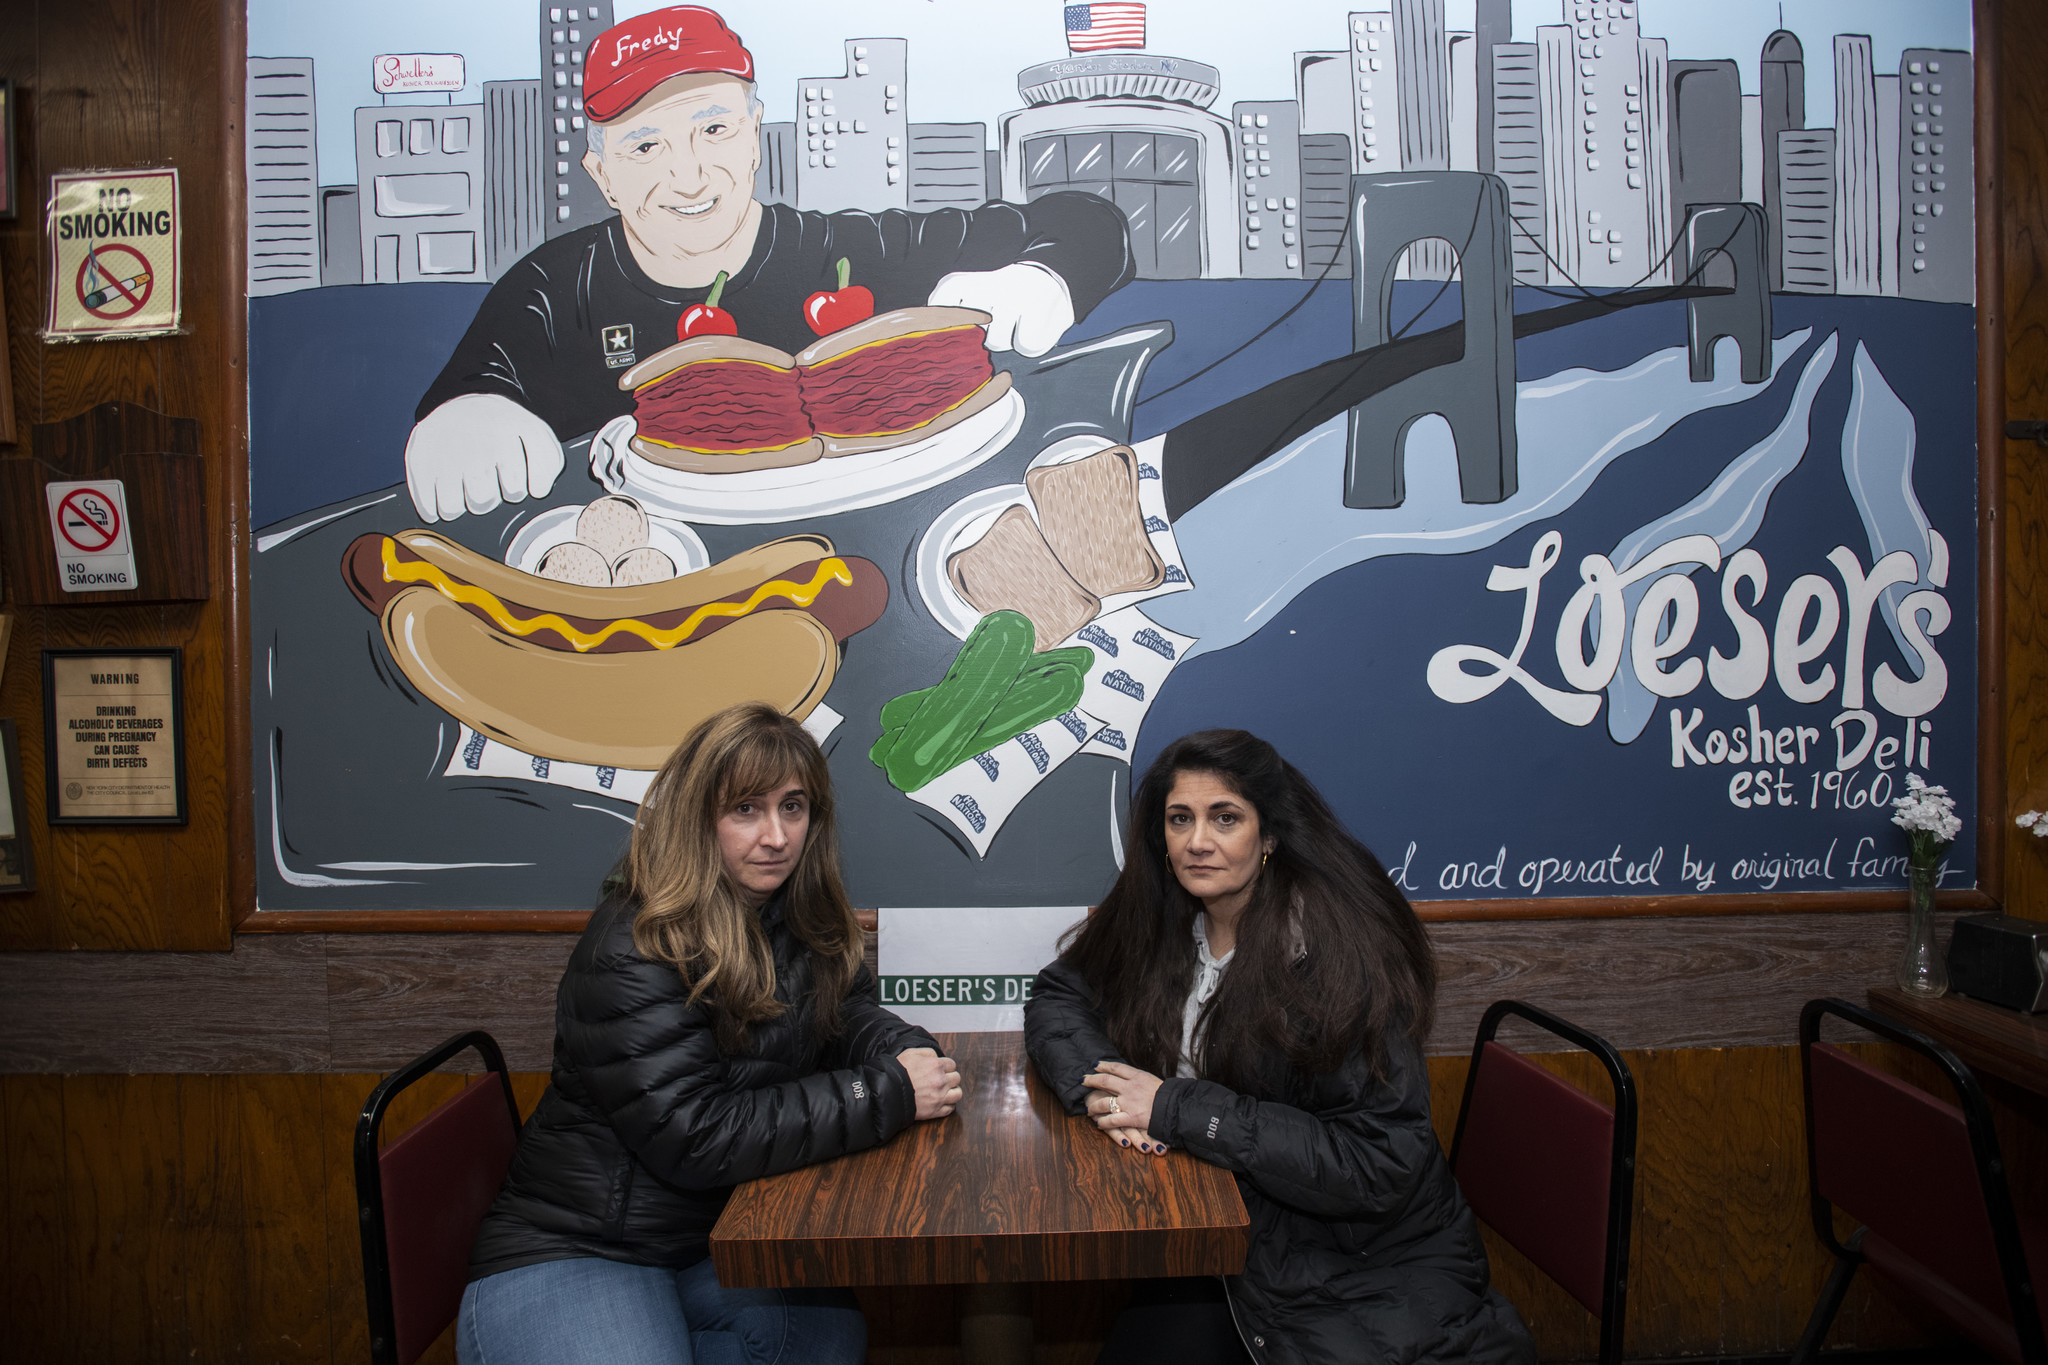 Pastrami on why? Perplexed Bronx deli owners facing possible shutdown after 60 years over ongoing gas line flap with city